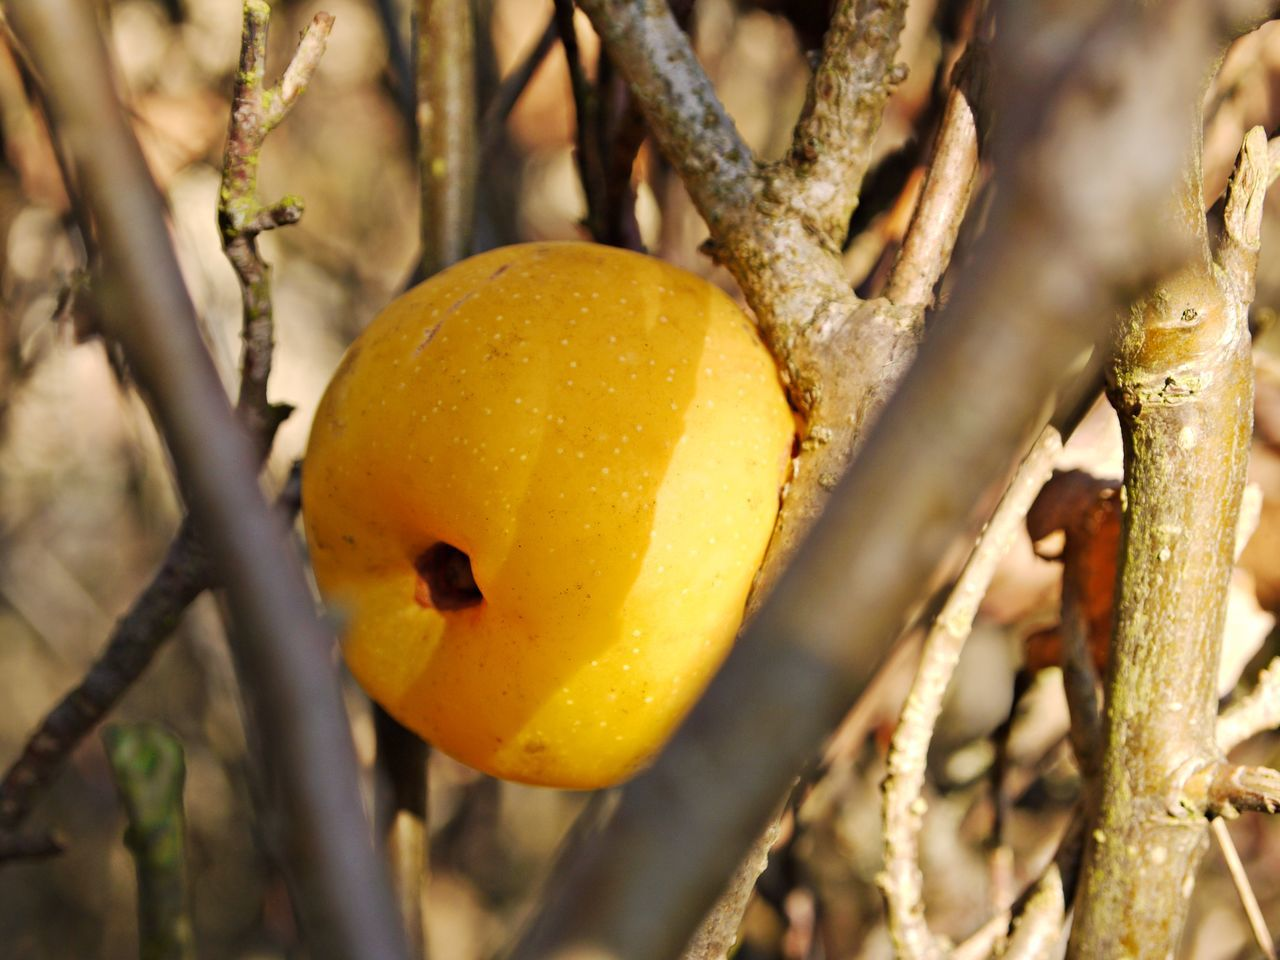 Autumn Fruits Beauty In Nature Branch Close-up Day Focus On Foreground Food Fruit Greengages Healthy Food Nature No People Outdoors Tree Yellow